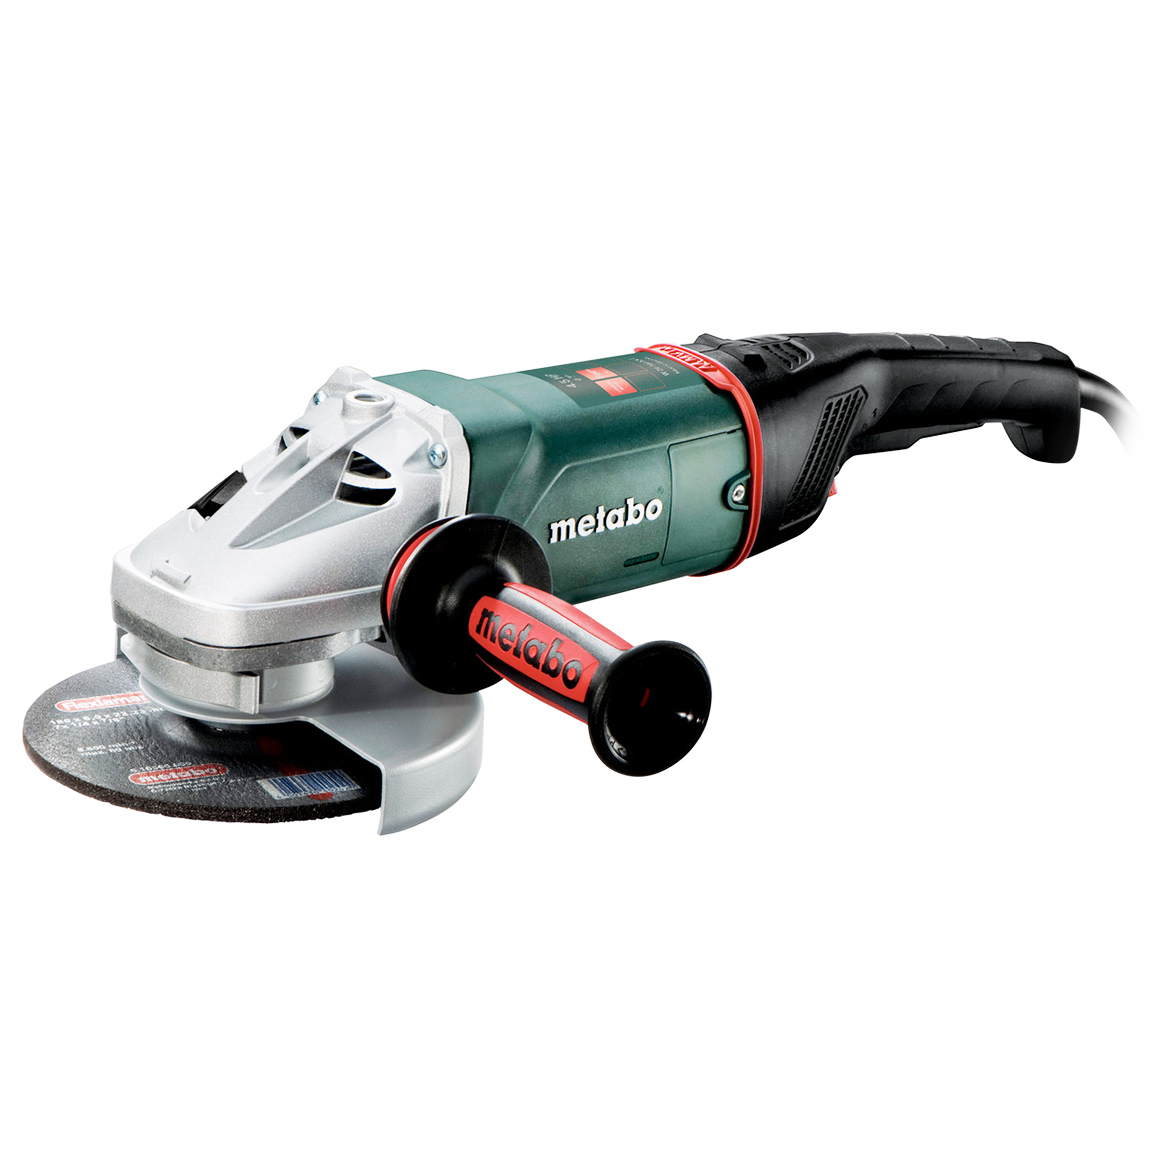 Metabo 606466420 15-Amp 8,500 RPM Corded Angle Grinder with Deadman/Lock-Off